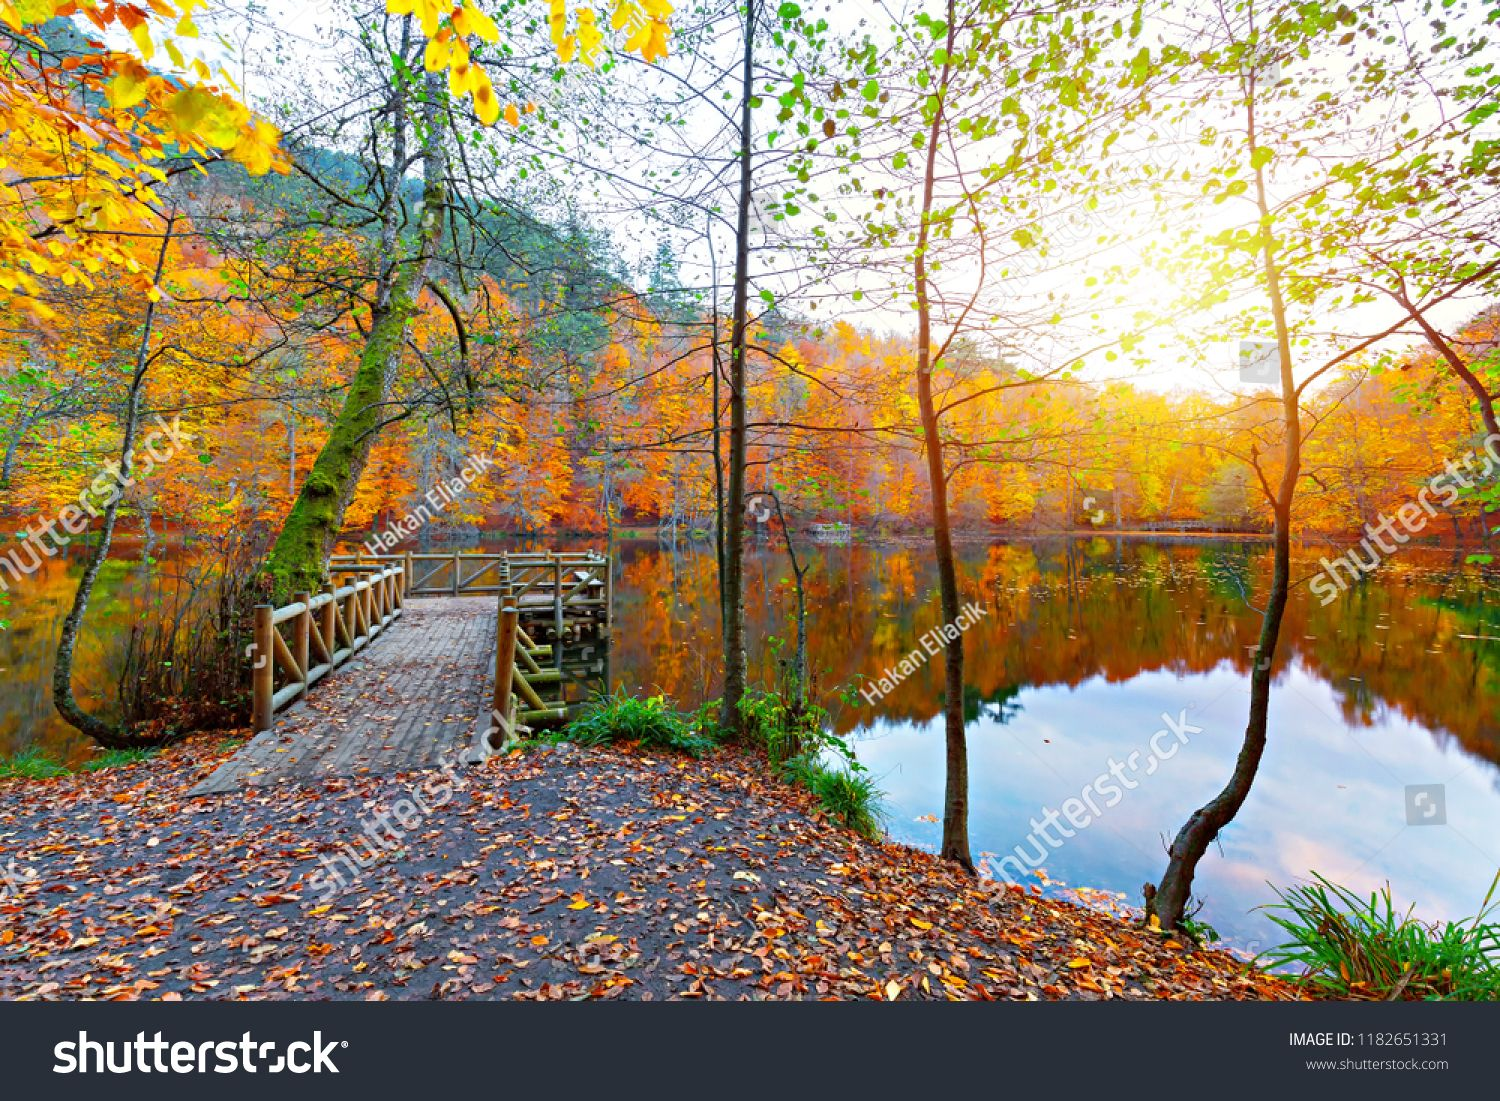 Beautiful Autumn Views Of Buyuk Lake In Yedigoller National Park Reflection Of Trees Wooden Pier Colored Leaves Falling Le Stock Photos National Parks Lake